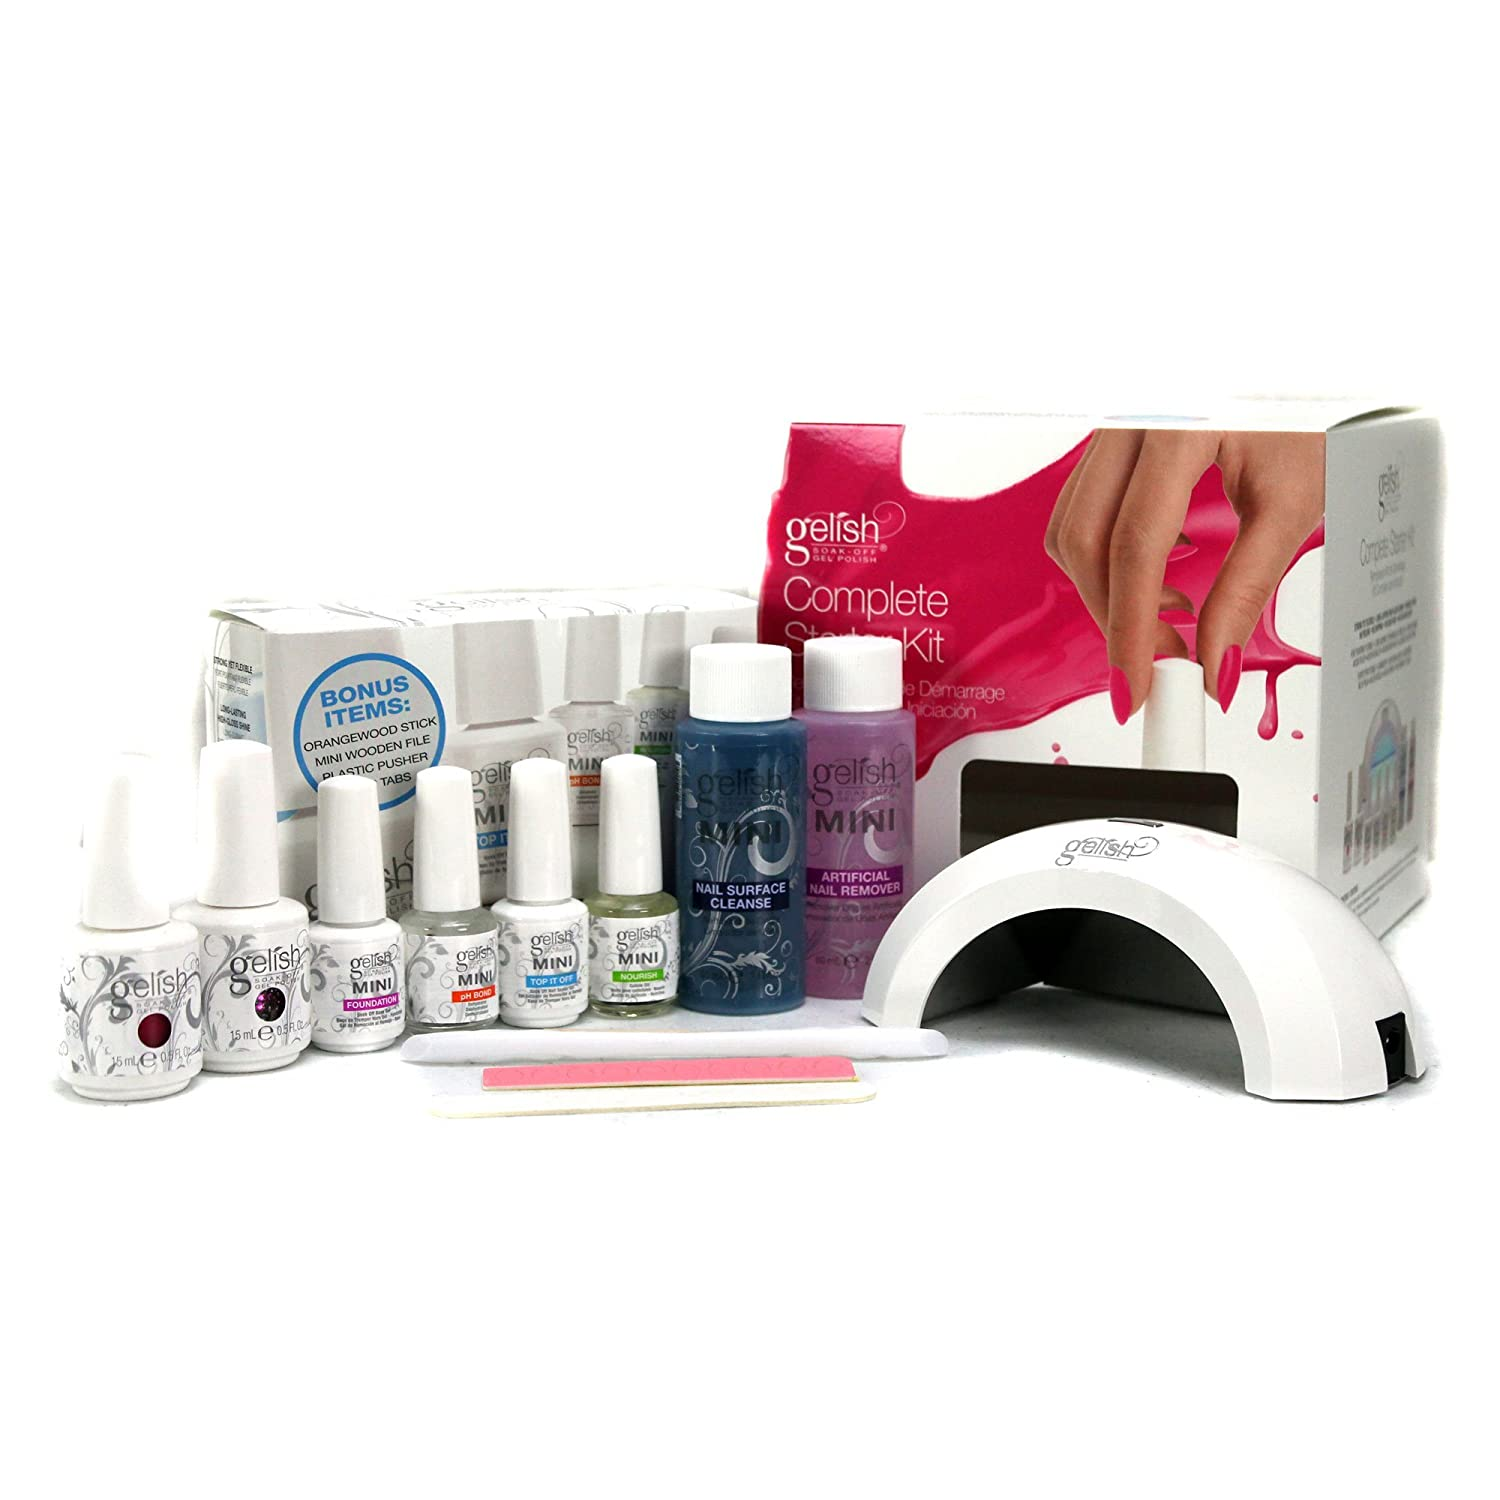 Gelish Complete Starter Kit, 1 Count HMYG0027